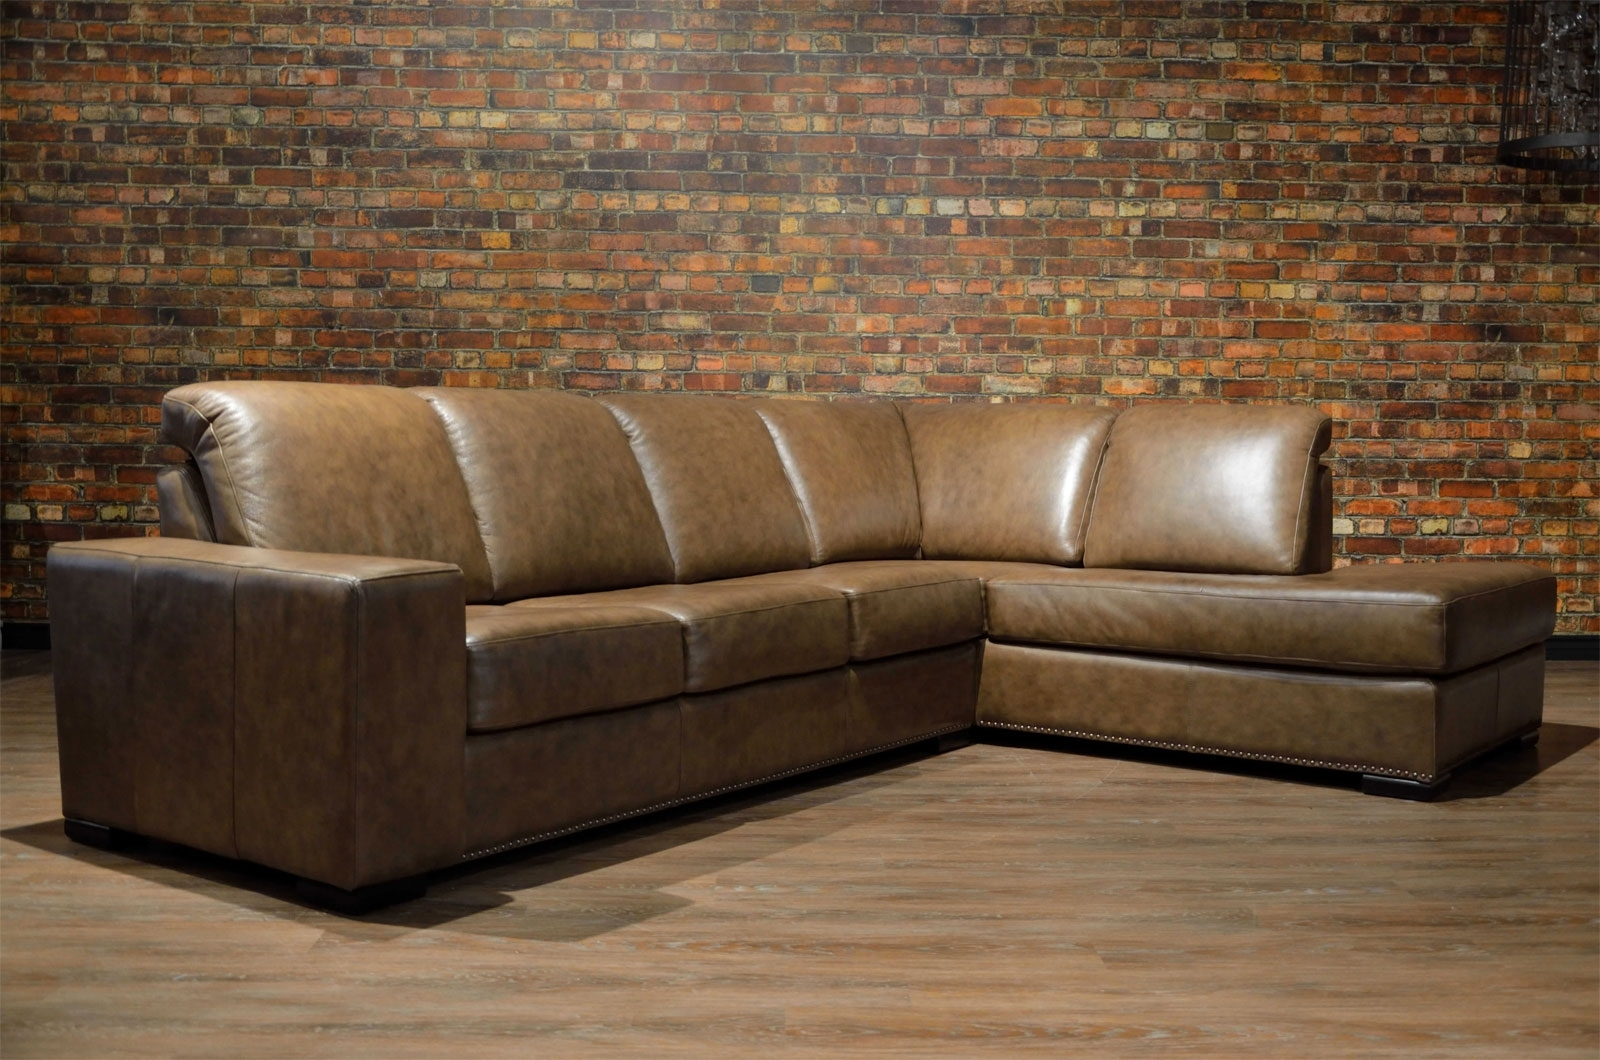 Leather Sofa & Sectional – Choose Color, Leather & Size | Boss Throughout Ontario Canada Sectional Sofas (View 6 of 10)